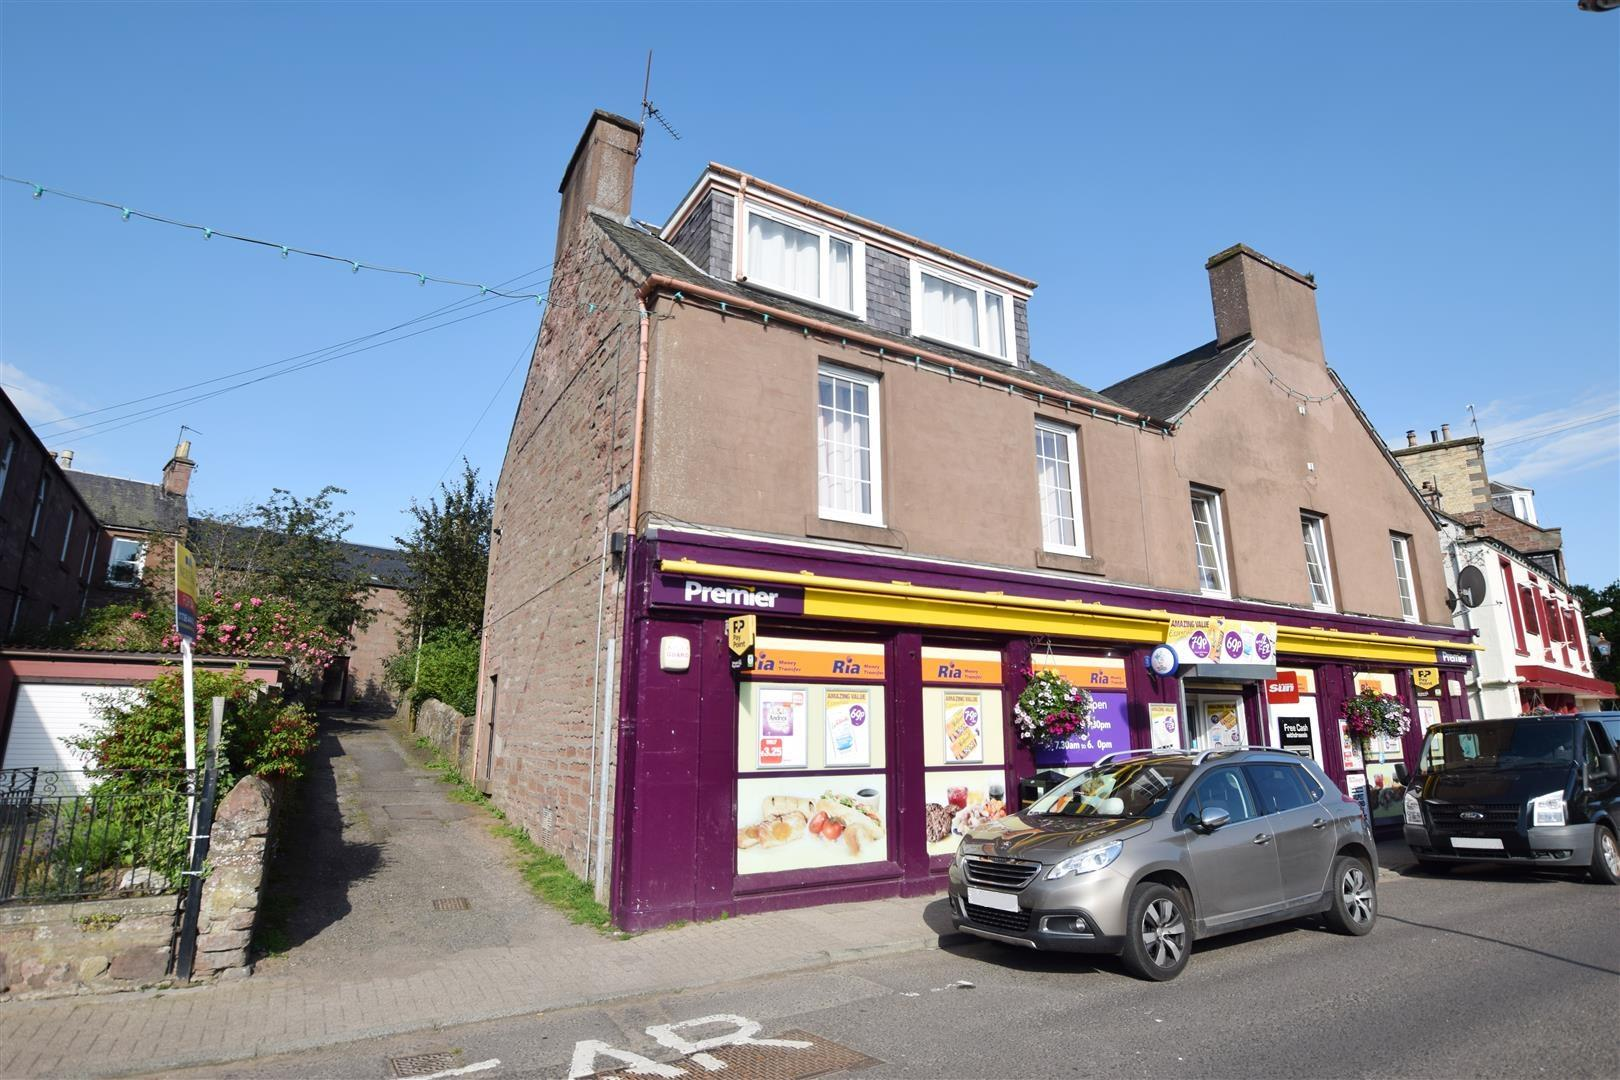 2, Leighton Square, Alyth, Blairgowrie, Perthshire, PH11 8AQ, UK